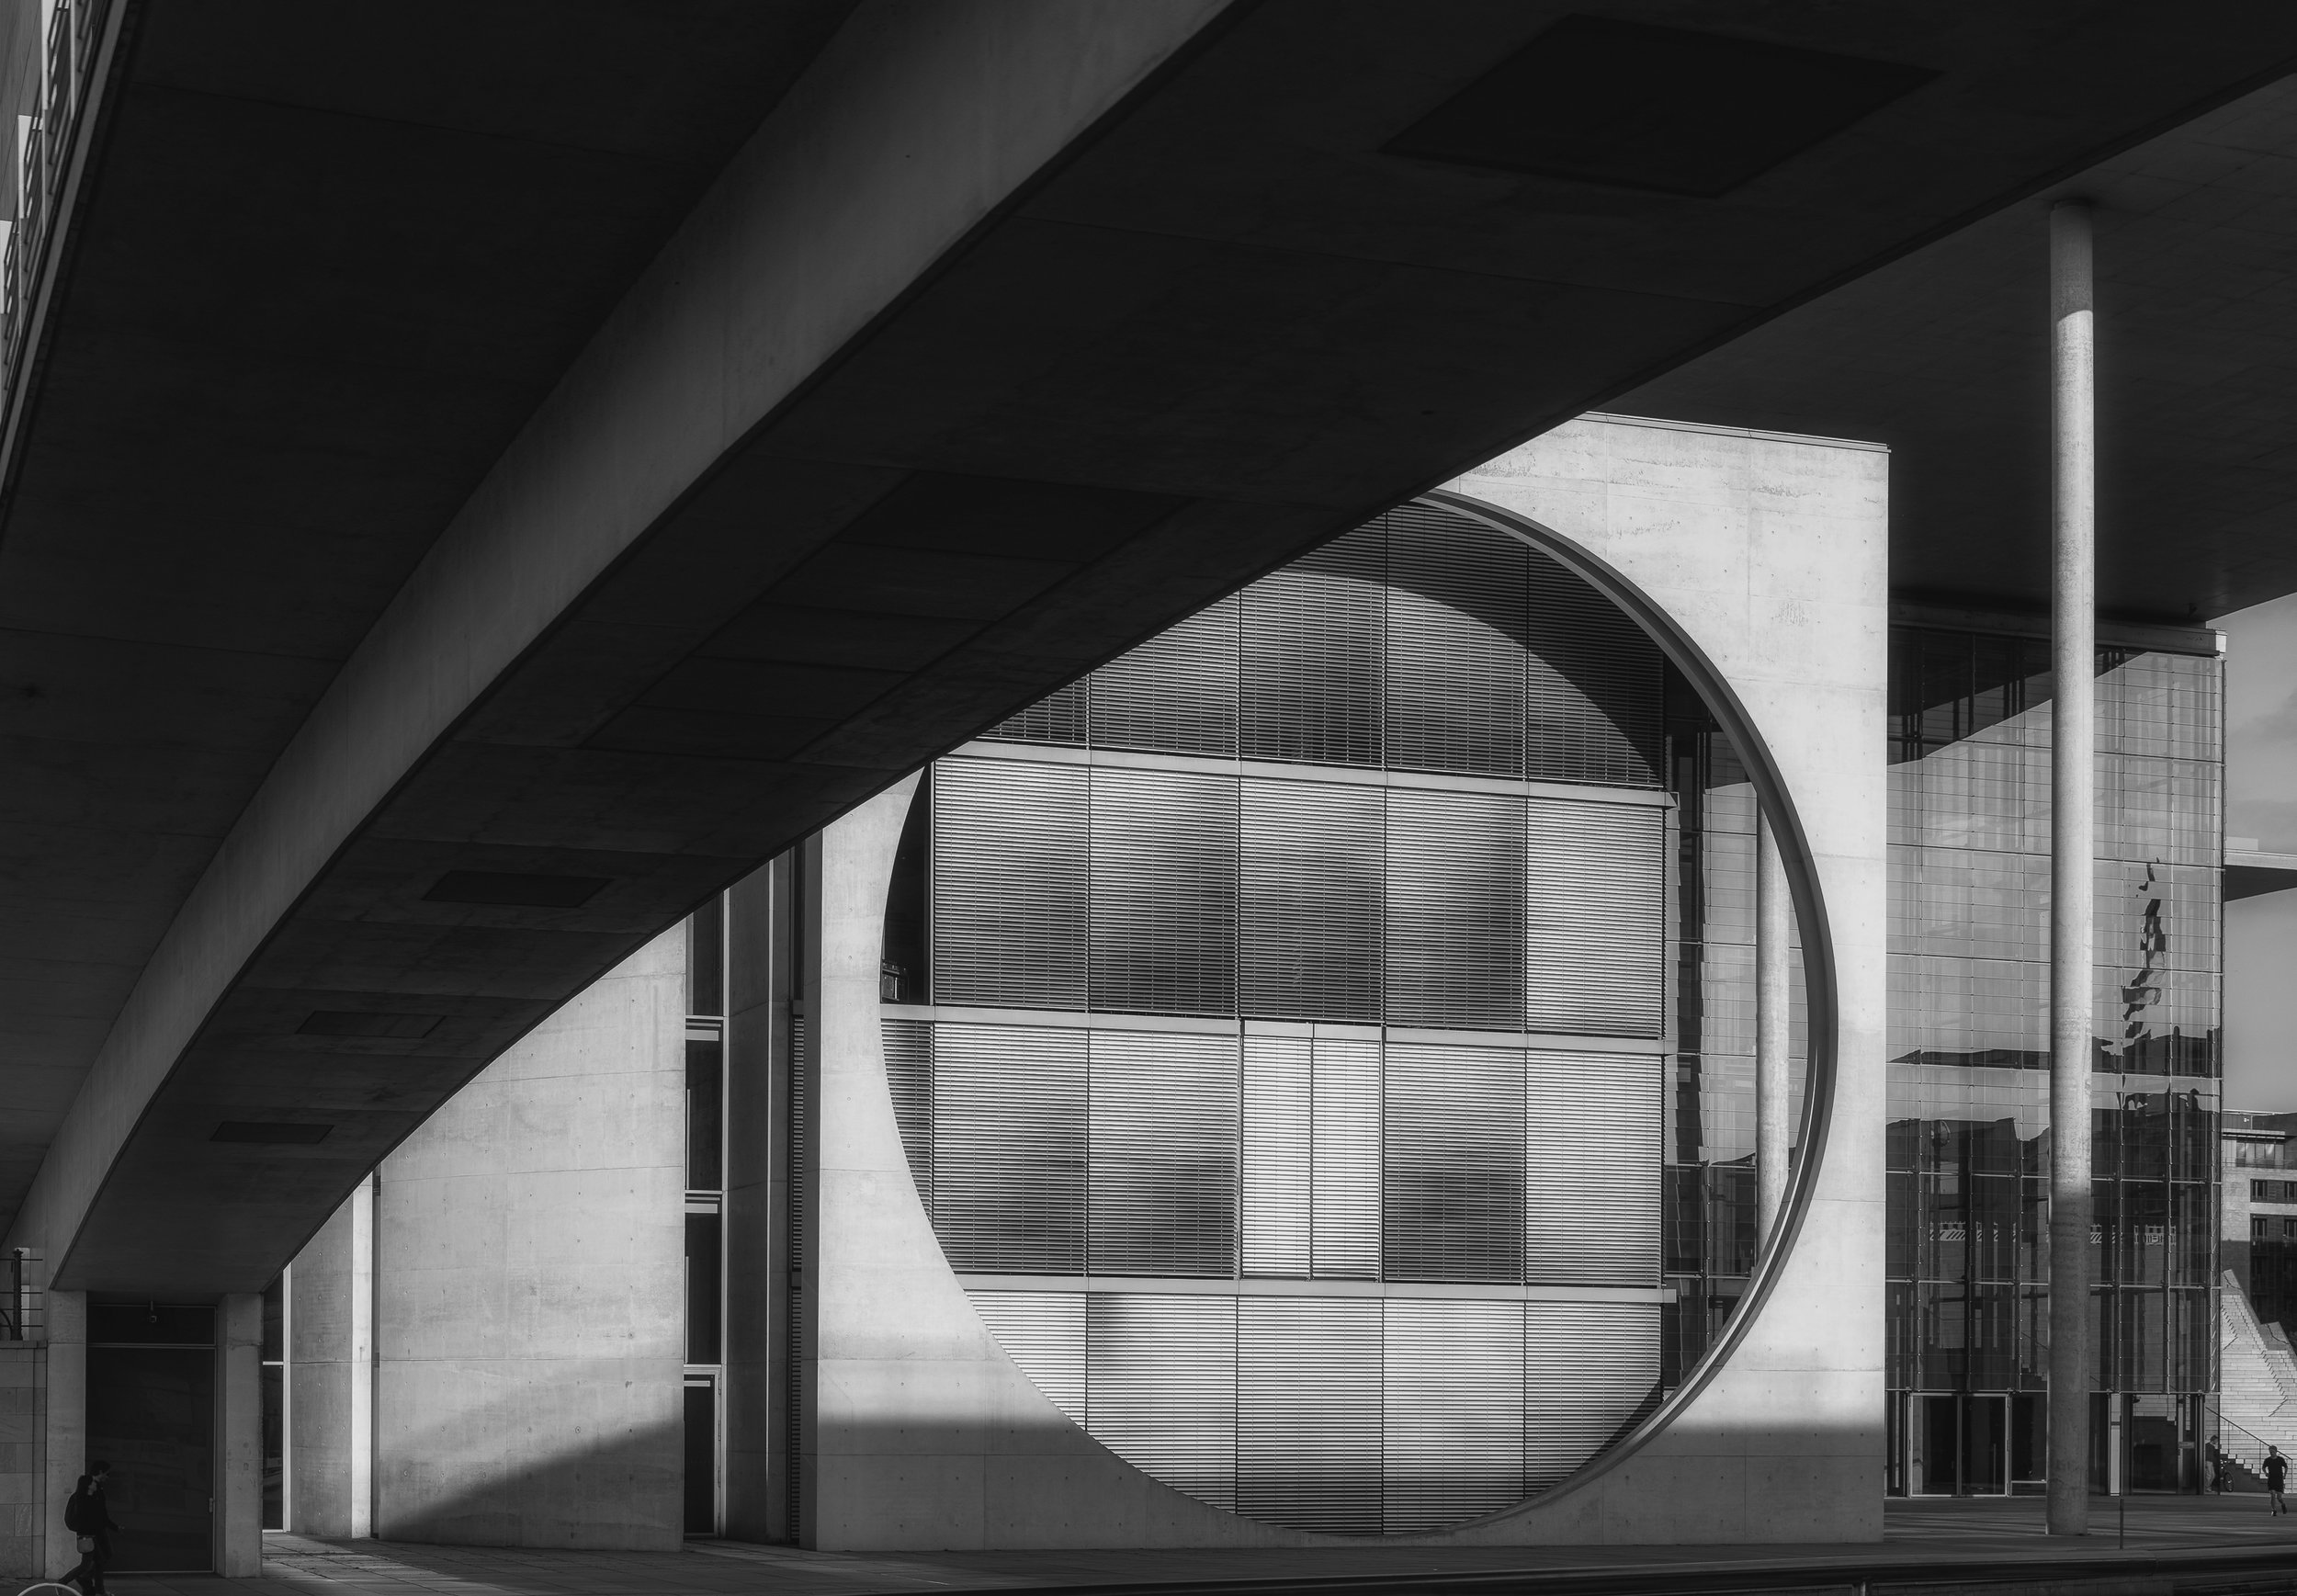 Marie-Elisabeth-Luders-Haus - Nikon D750, 1/160 @ f/10, ISO 125, 48mm. Spectacular modern architecture in the city of Berlin. This building sits along the river and is part of the government complex.